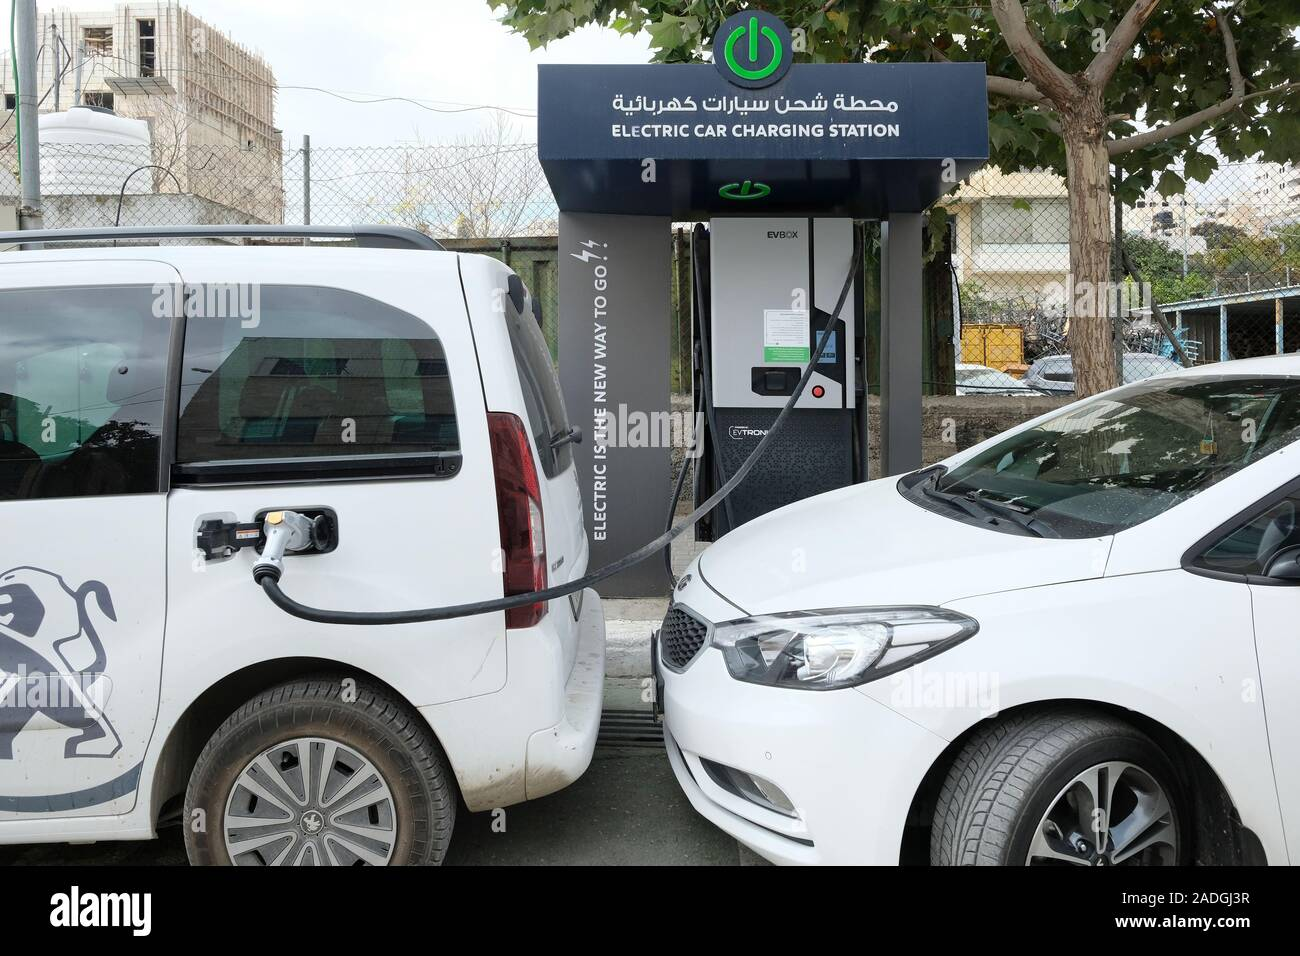 Car charging from an on-street electric car charging station in the city of Hebron in the West Bank, Palestinian Territories. Stock Photo